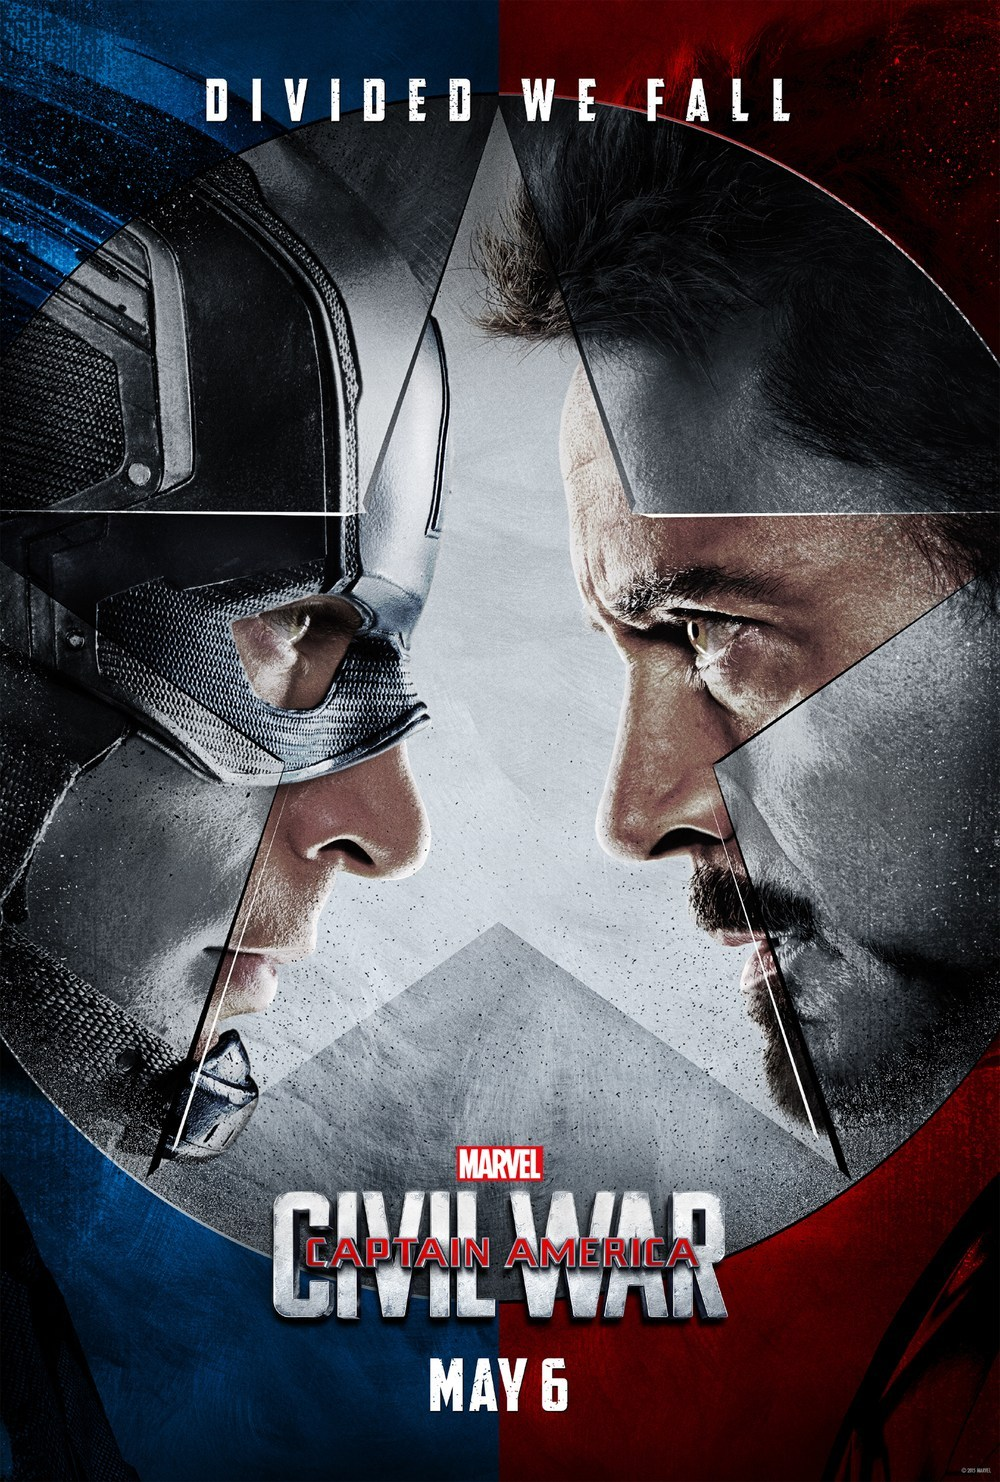 incredible first trailer for captain america civil war1 Captain America : Civil War